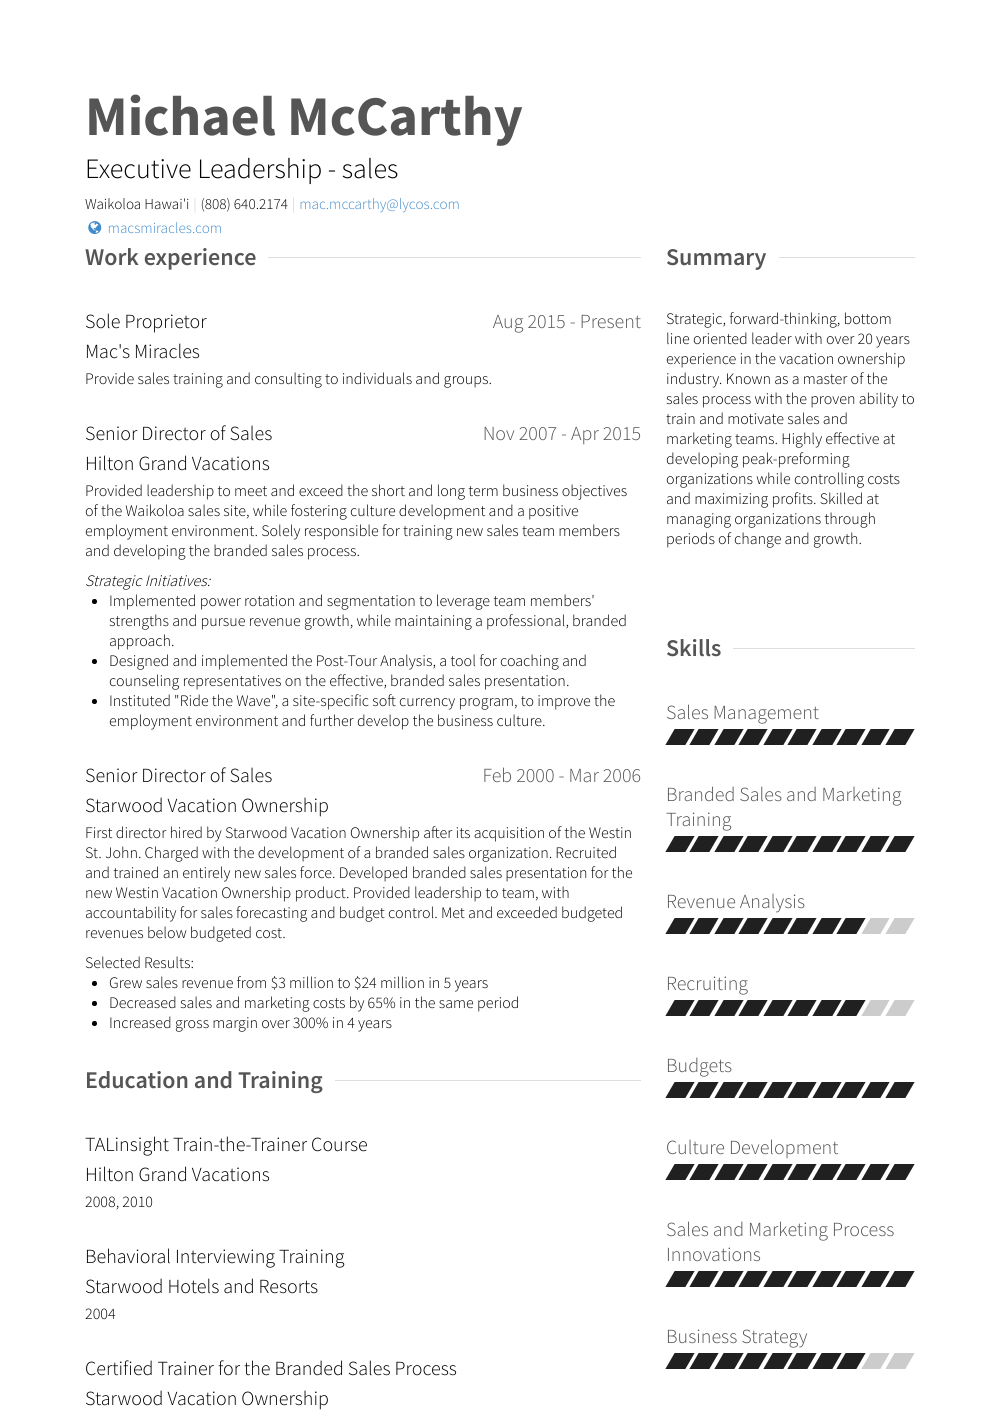 Sole Proprietor Resume Samples & Templates VisualCV